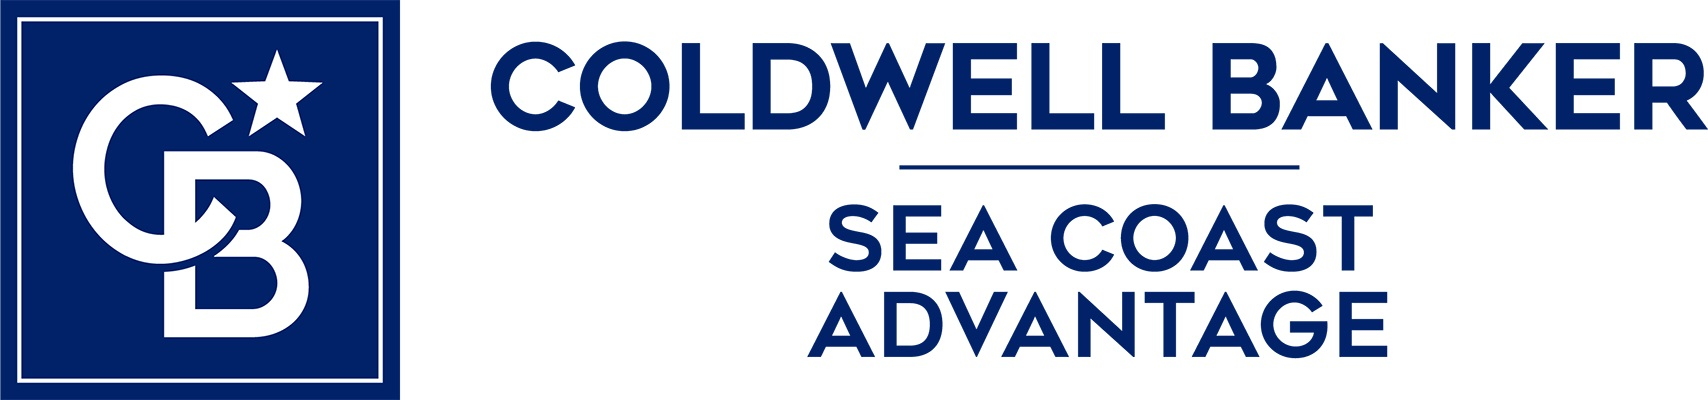 Steve Wells - Coldwell Banker Sea Coast Advantage Realty